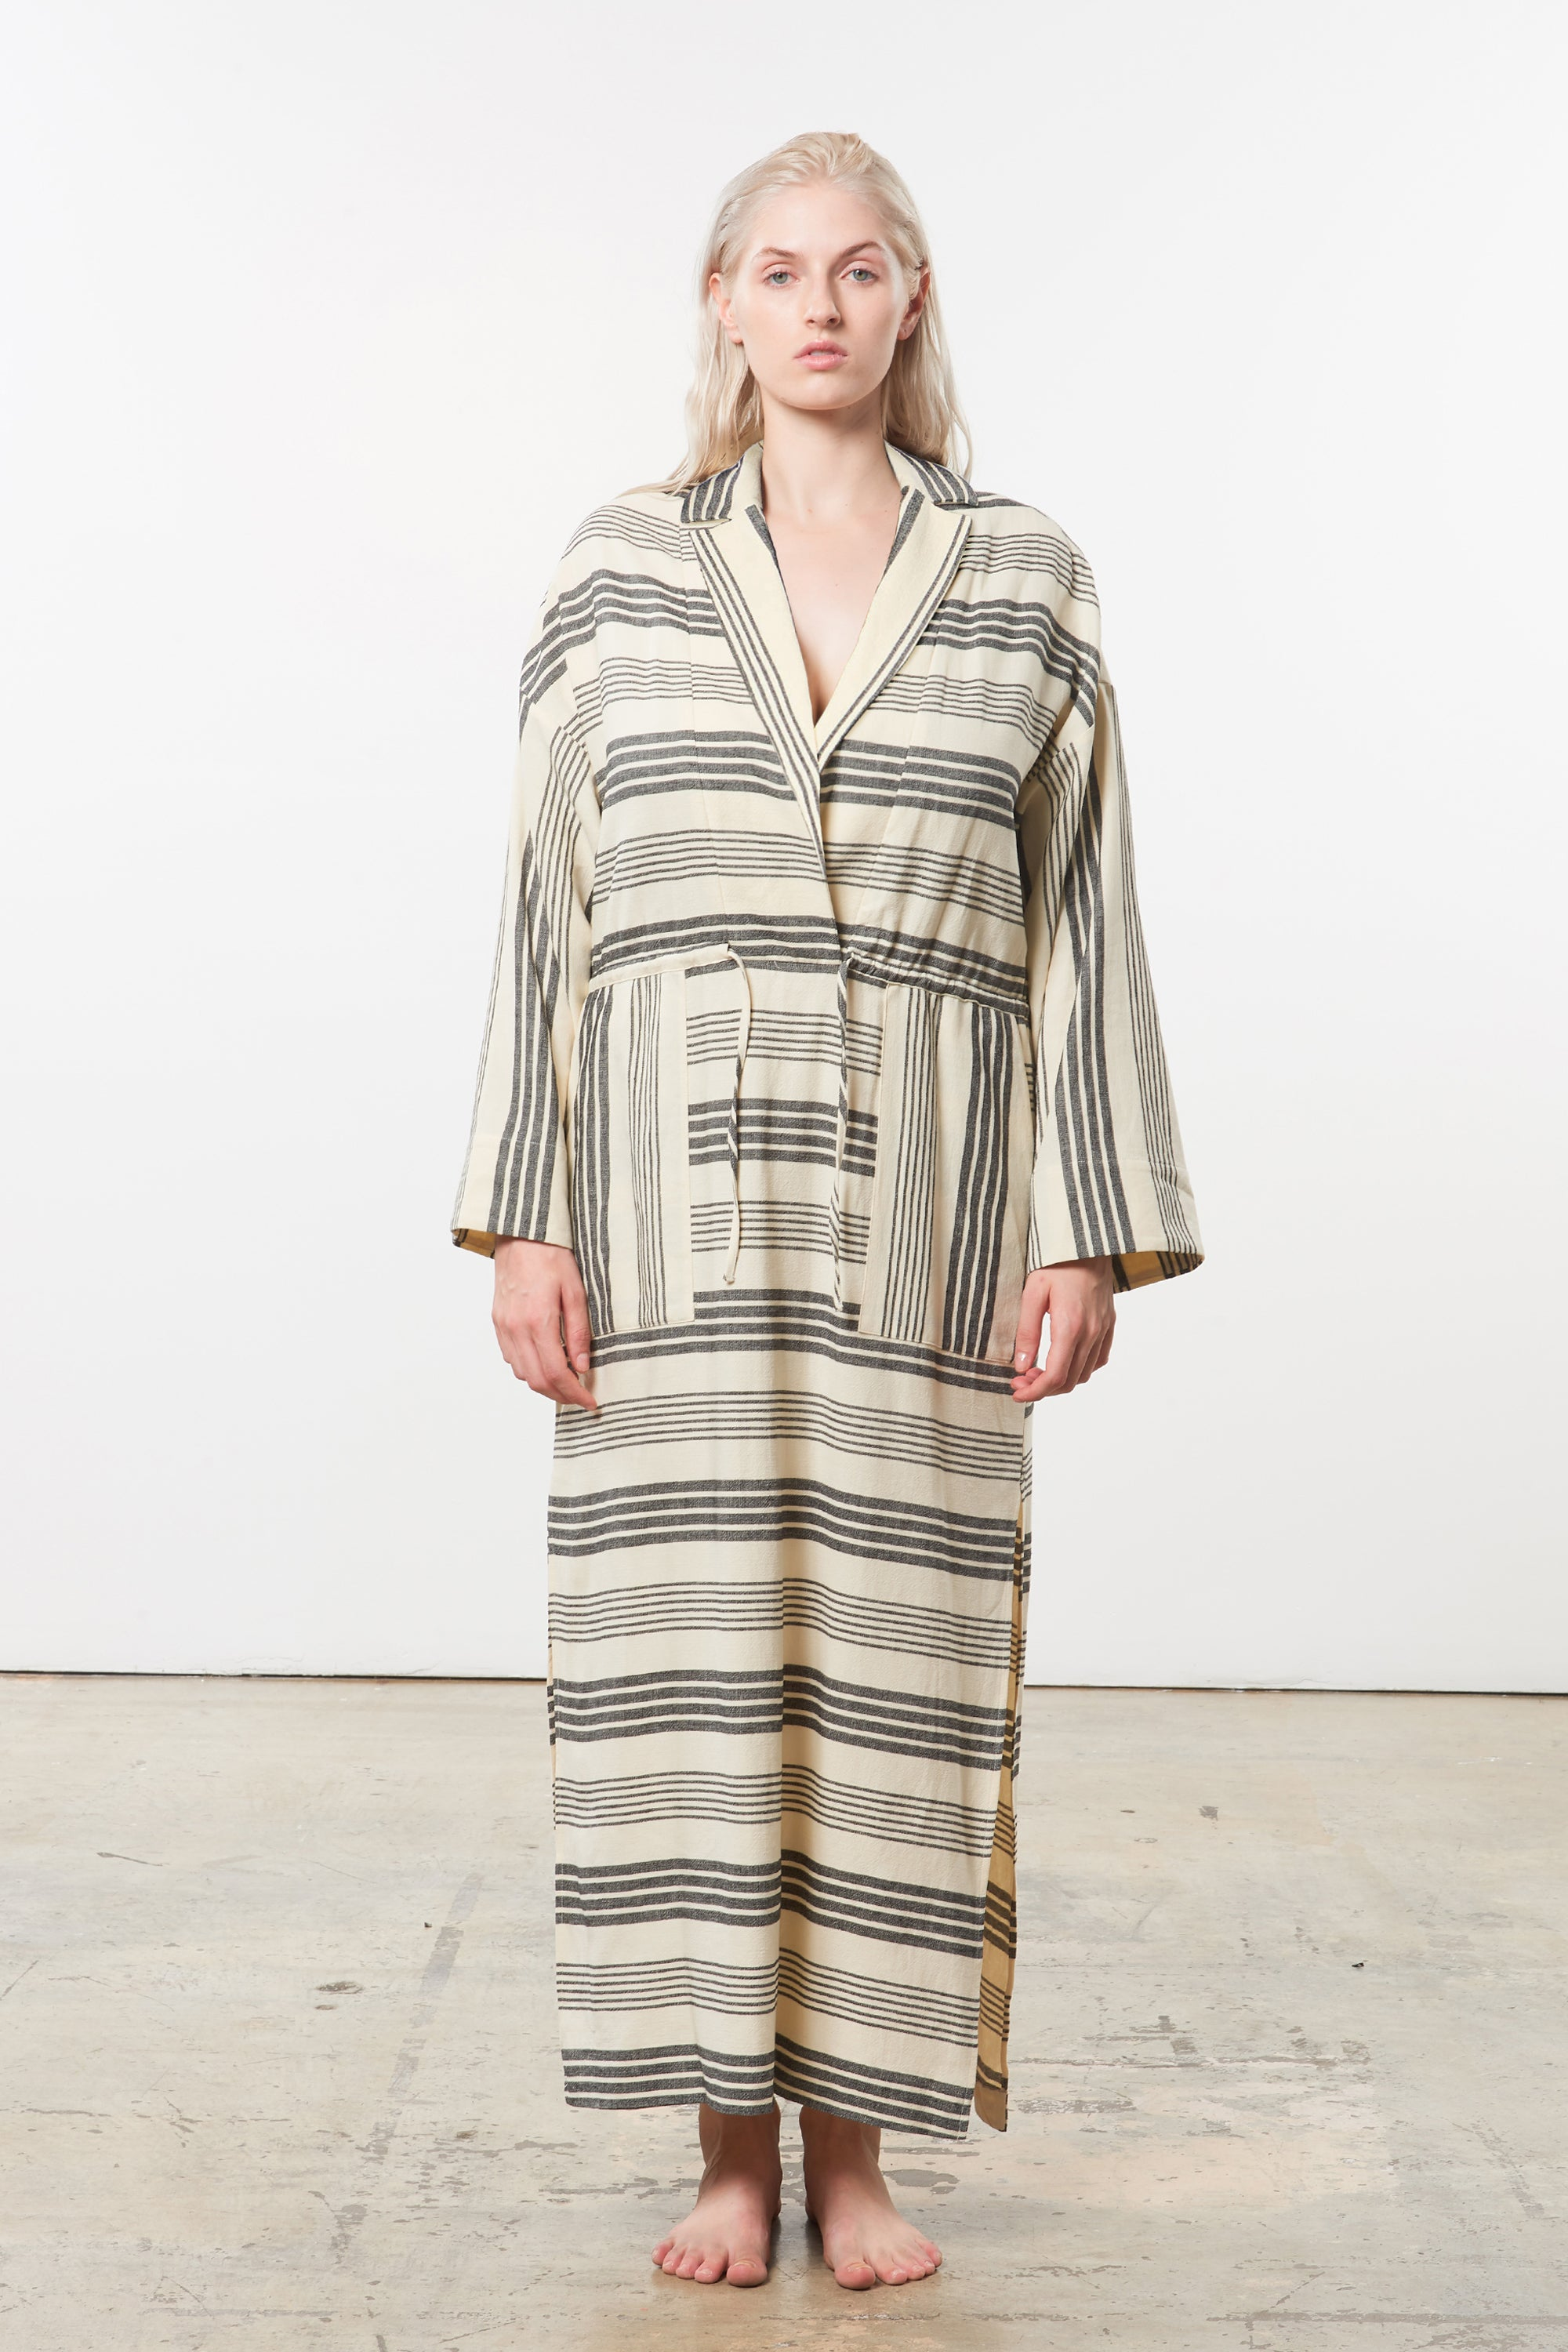 Mara Hoffman Extended Diega Coverup Dress in black striped cotton TENCEL Lyocell blend (unbelted)